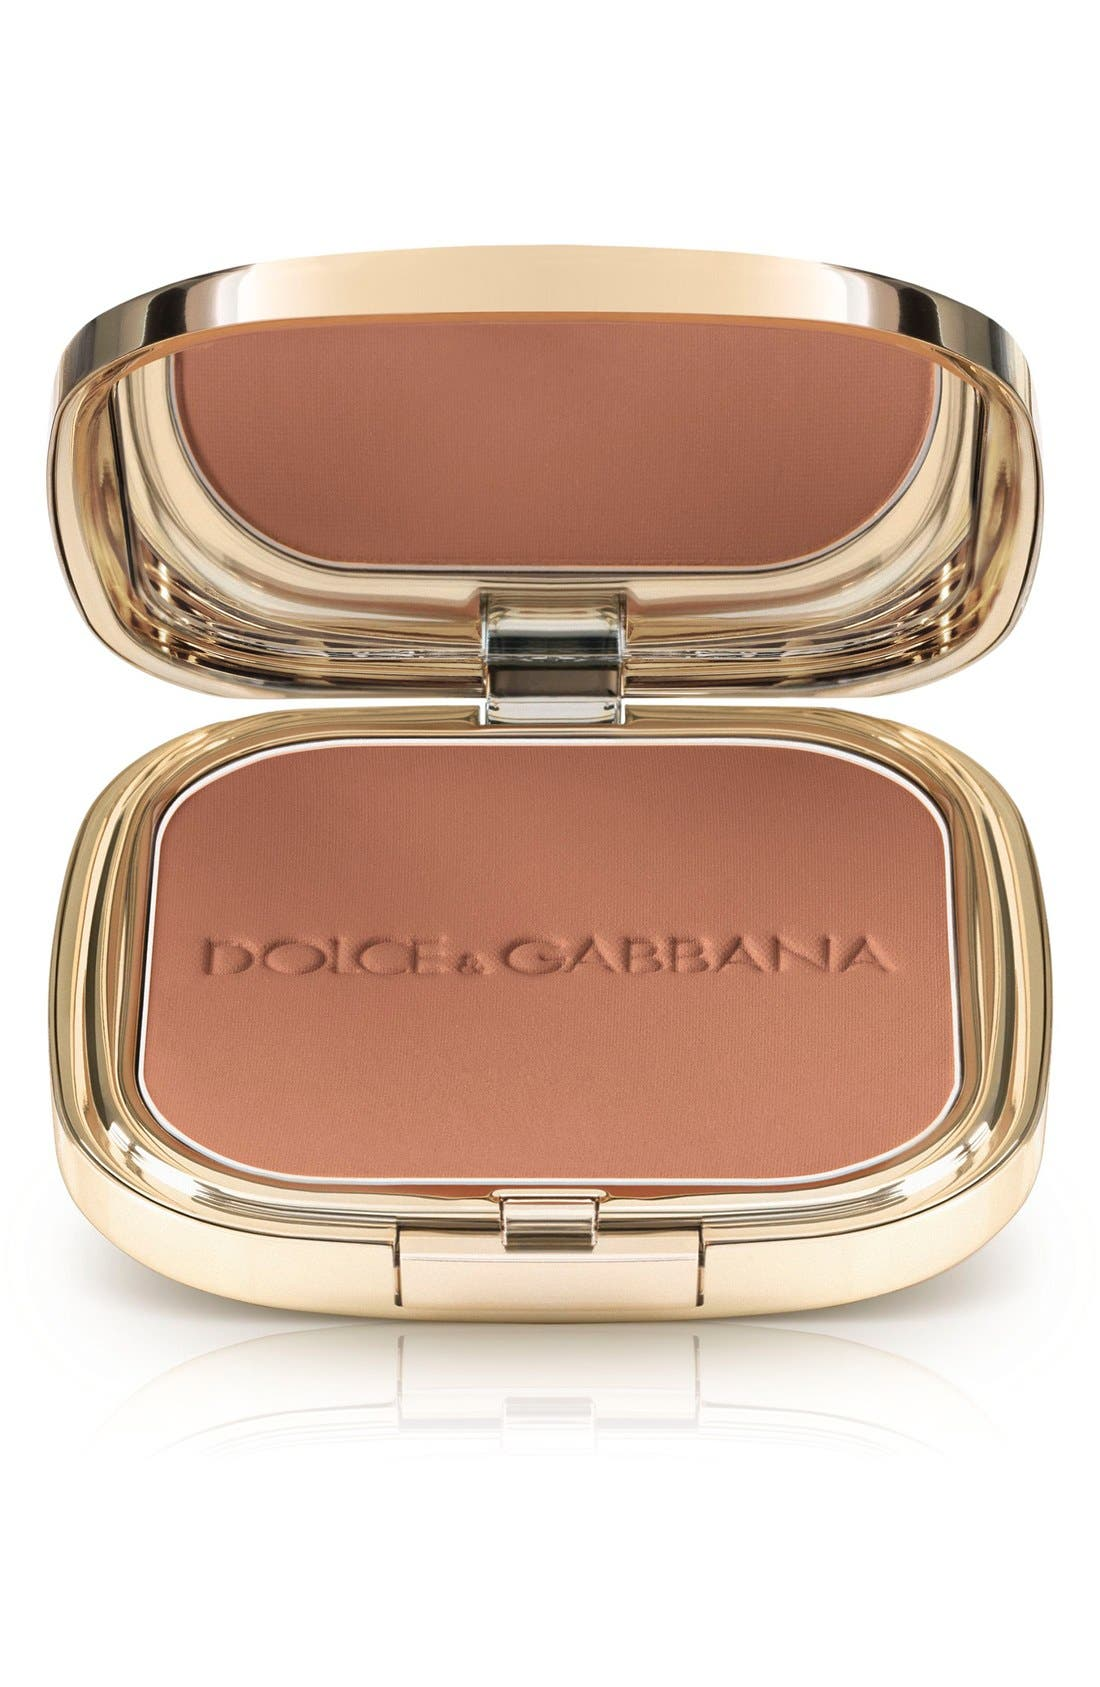 Dolce&Gabbana Beauty 'The Essence of Holiday - Honey Matte' Bronzing Powder (Limited Edition)